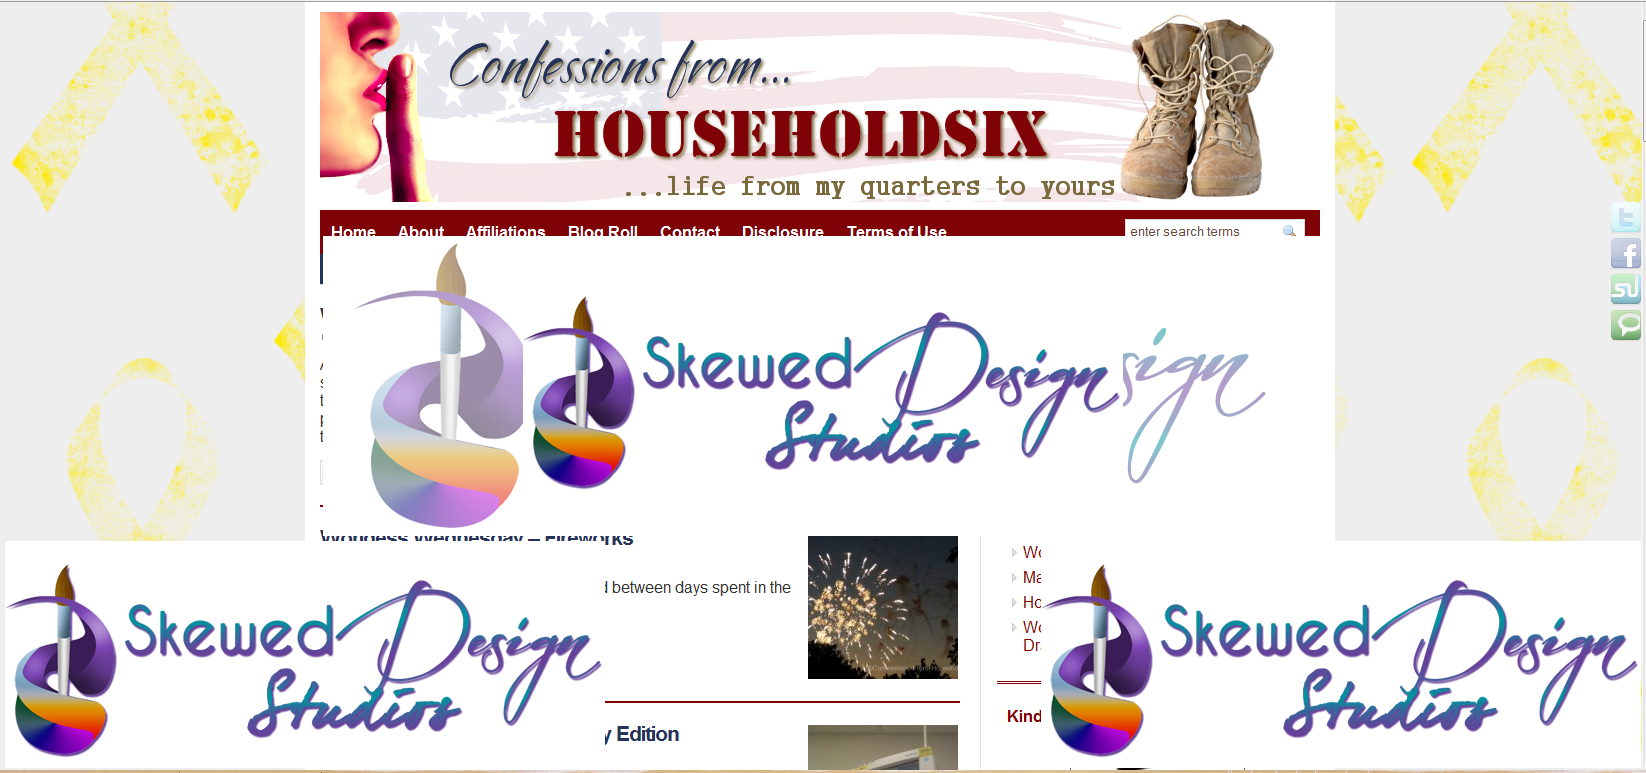 confessions-from-householdsix